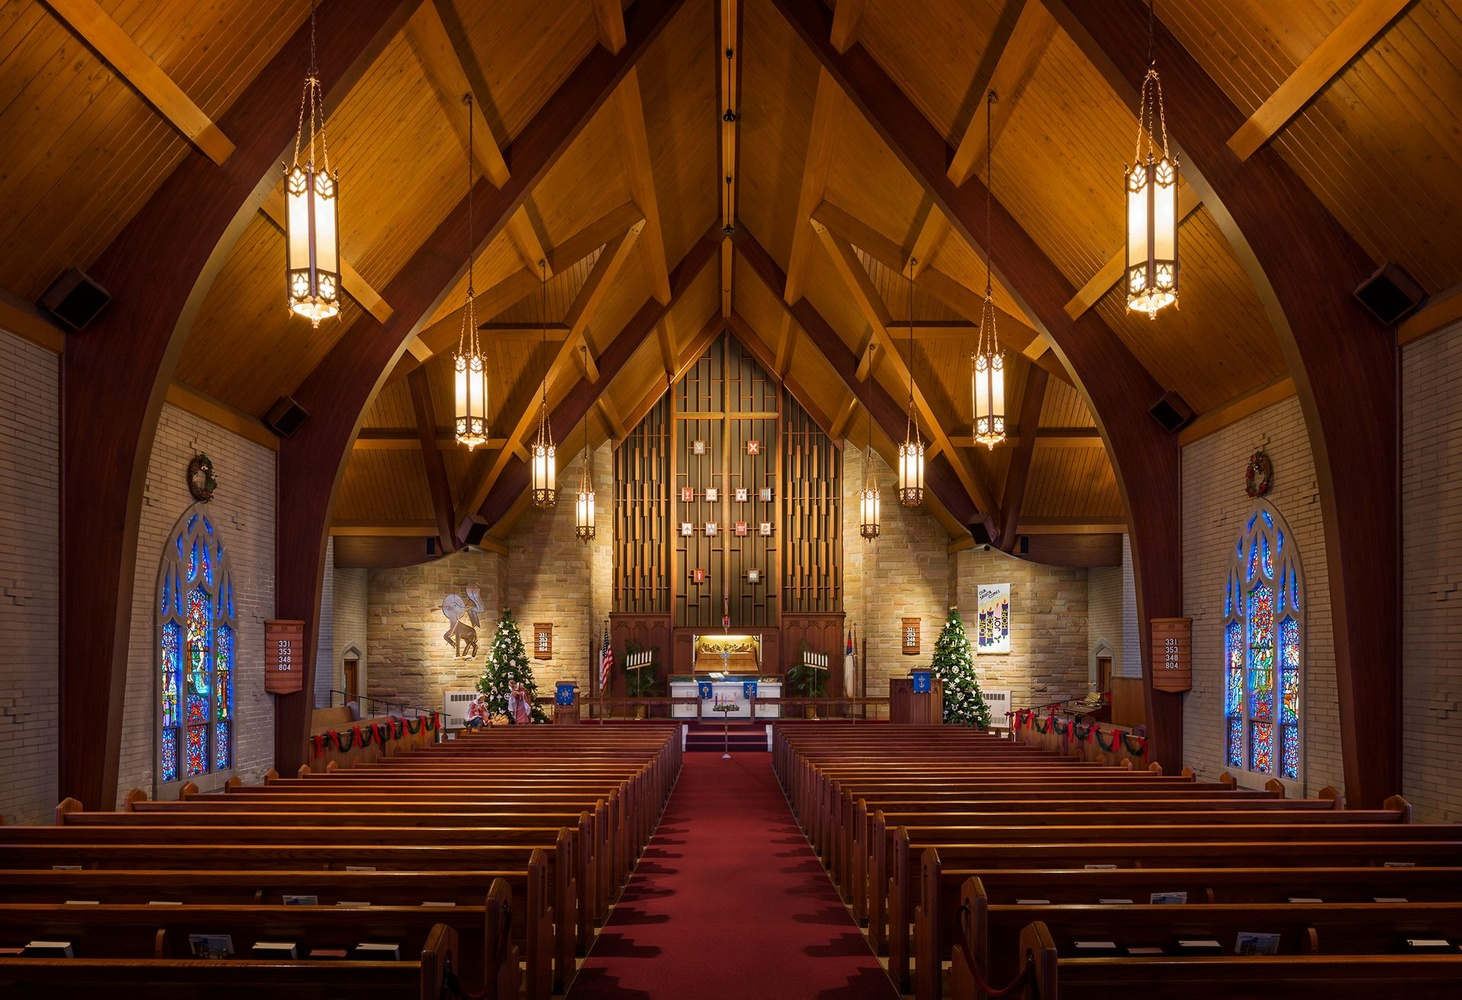 Zion Evangelical Lutheran Church by Vaclav Rus